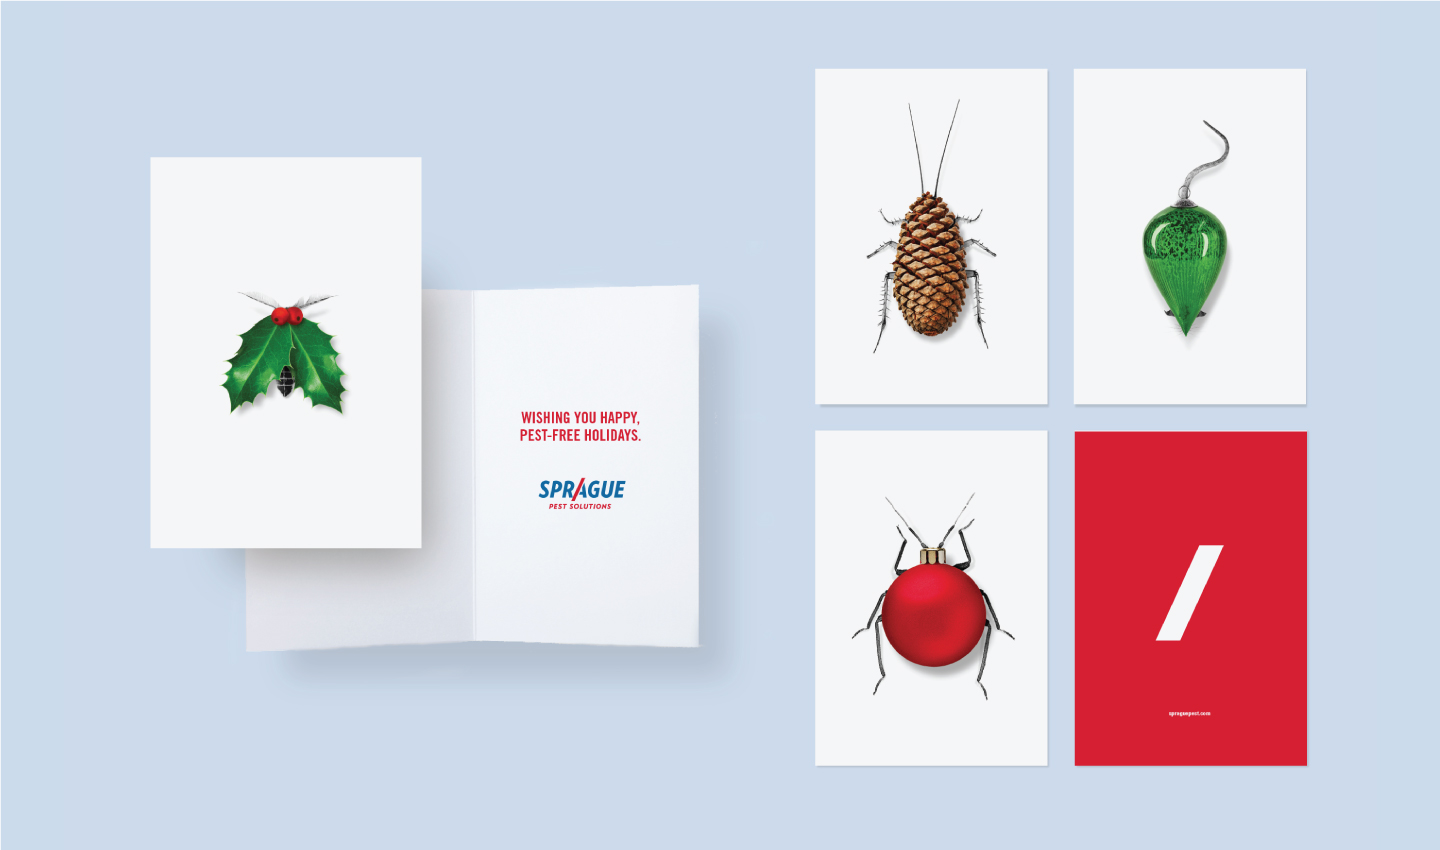 Sps case study holidaycards2017